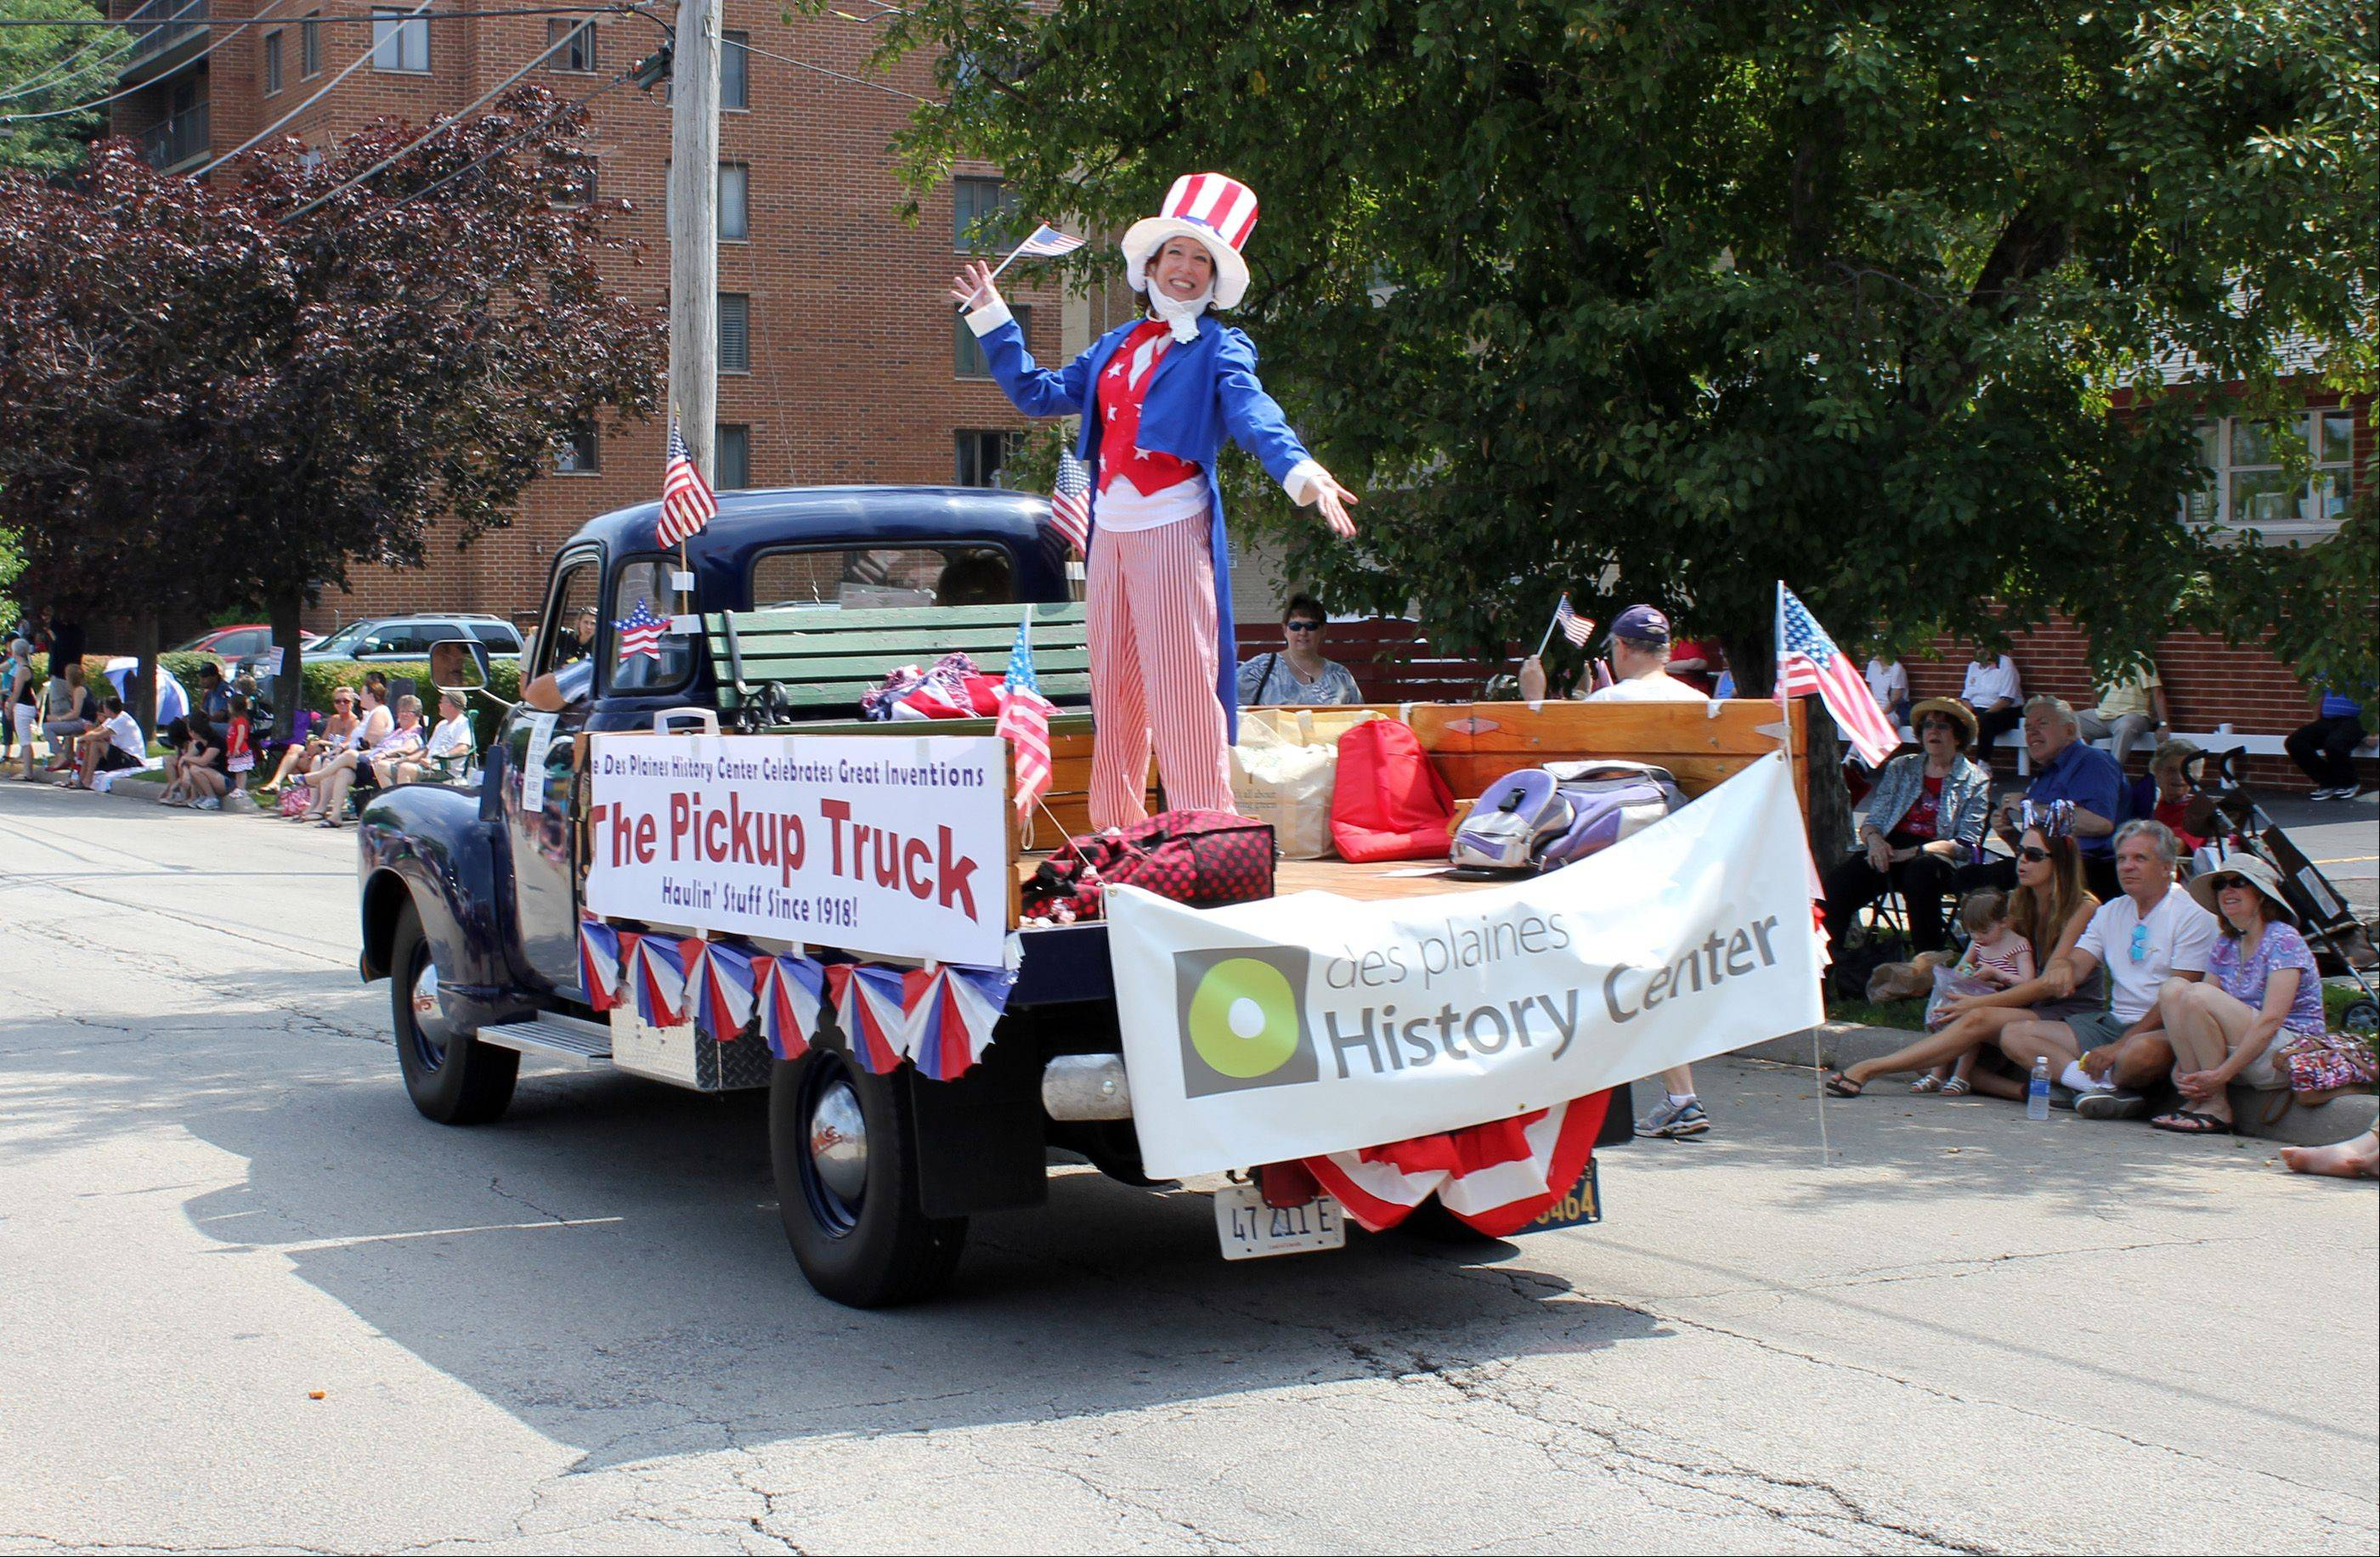 "Picture submitted by Karen Kozenczak, City of Des Plaines Media Services DivisionElizabeth Makelim, Des Plaines Historical Society, performs as ""Uncle Sam"" on the Des Plaines Historical float in the July Fourth Parade."